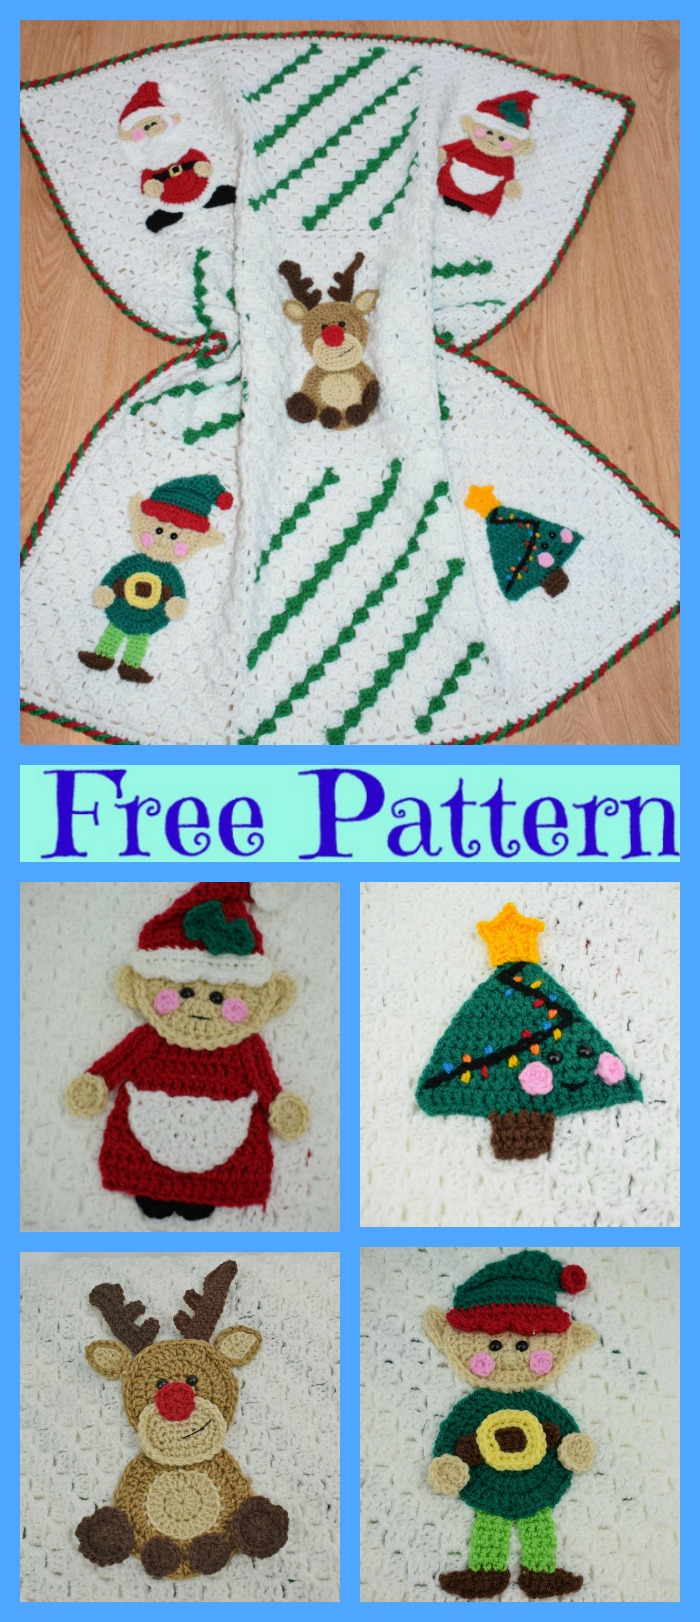 diy4ever-Crochet Christmas Blanket - Free Patterns